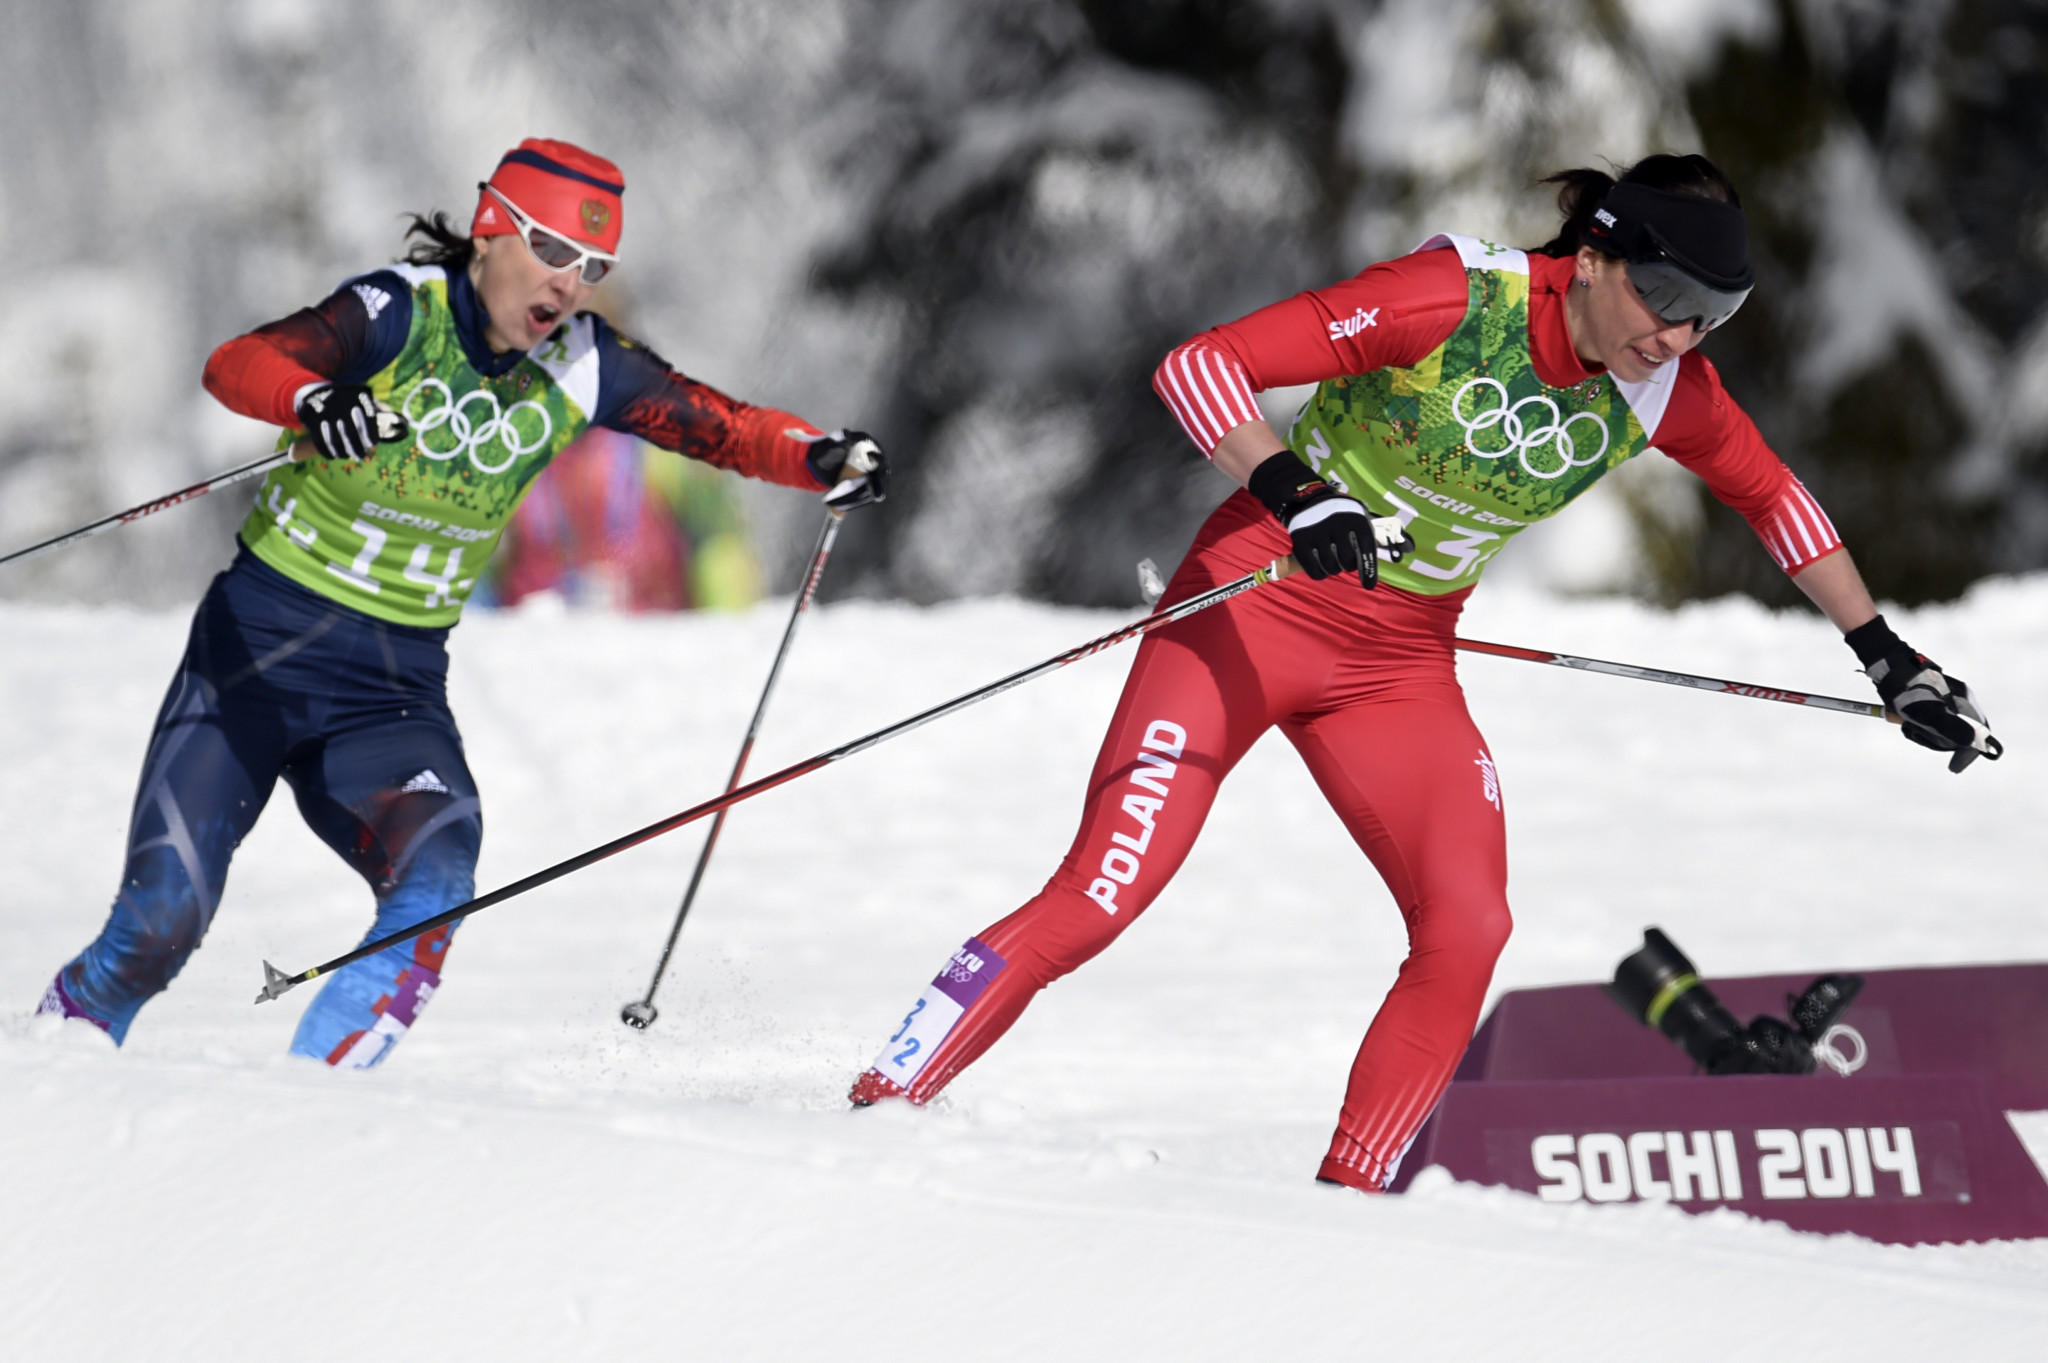 Julia Ivanova, left, is among four Russian cross-country skiers disqualified by the IOC today ©Getty Images